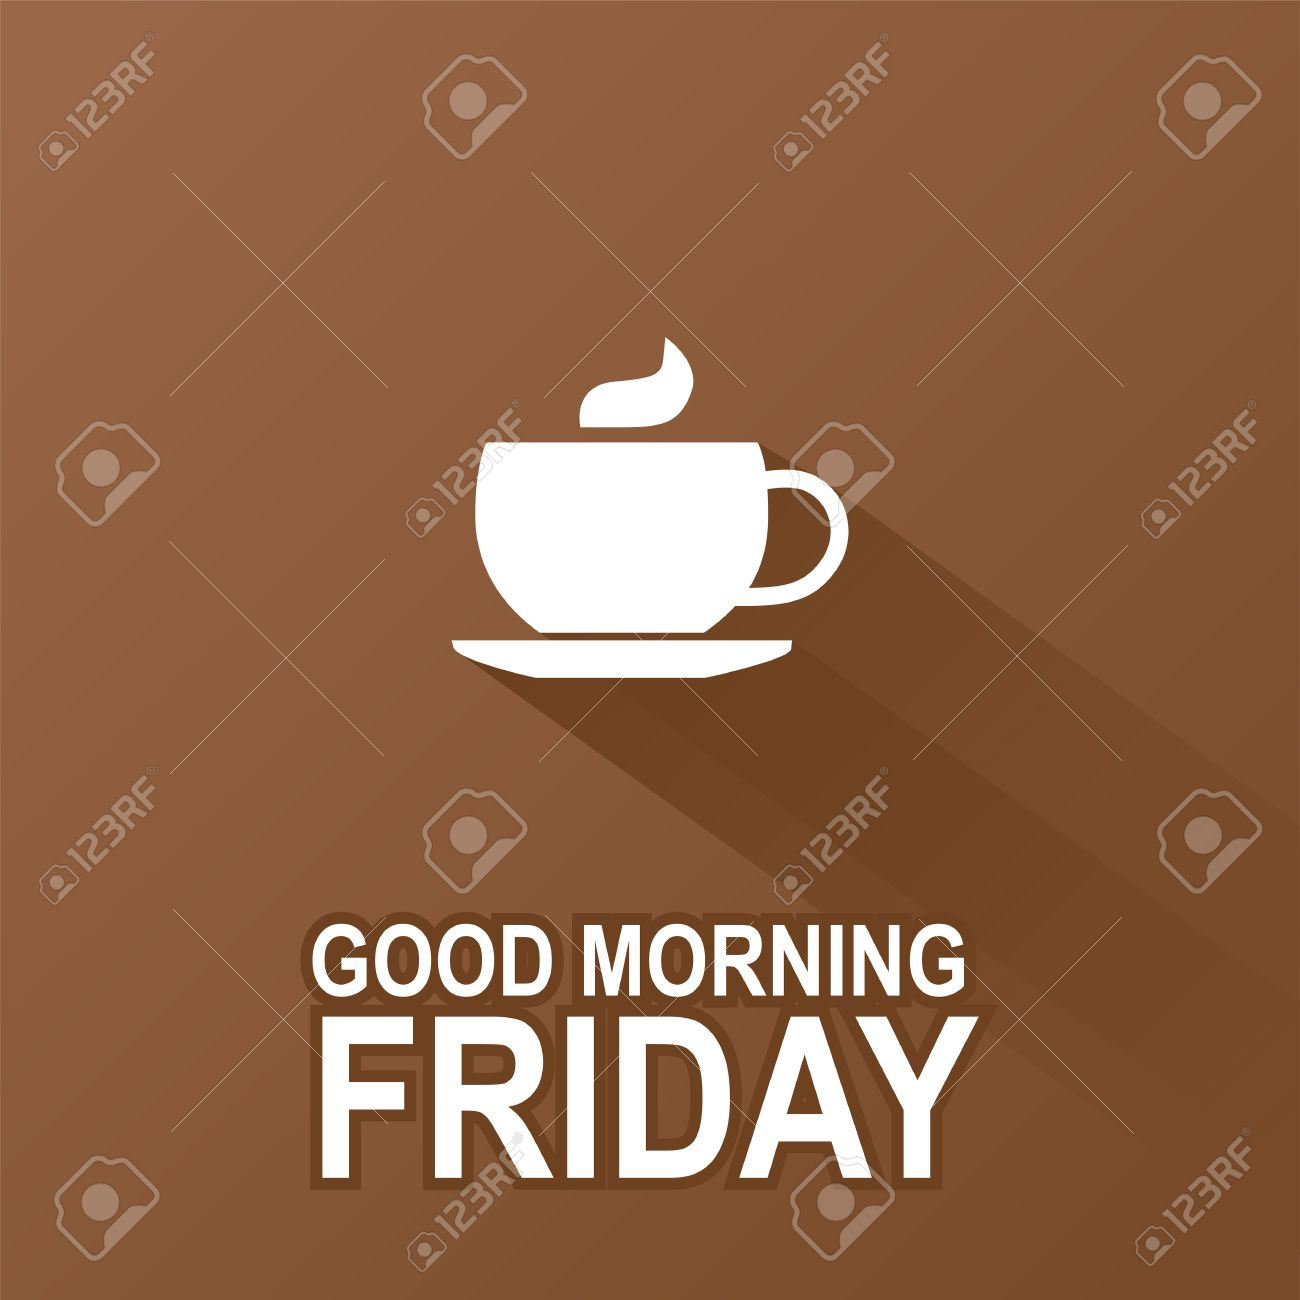 Text Good Morning Friday On A Brown Background Royalty Free Cliparts